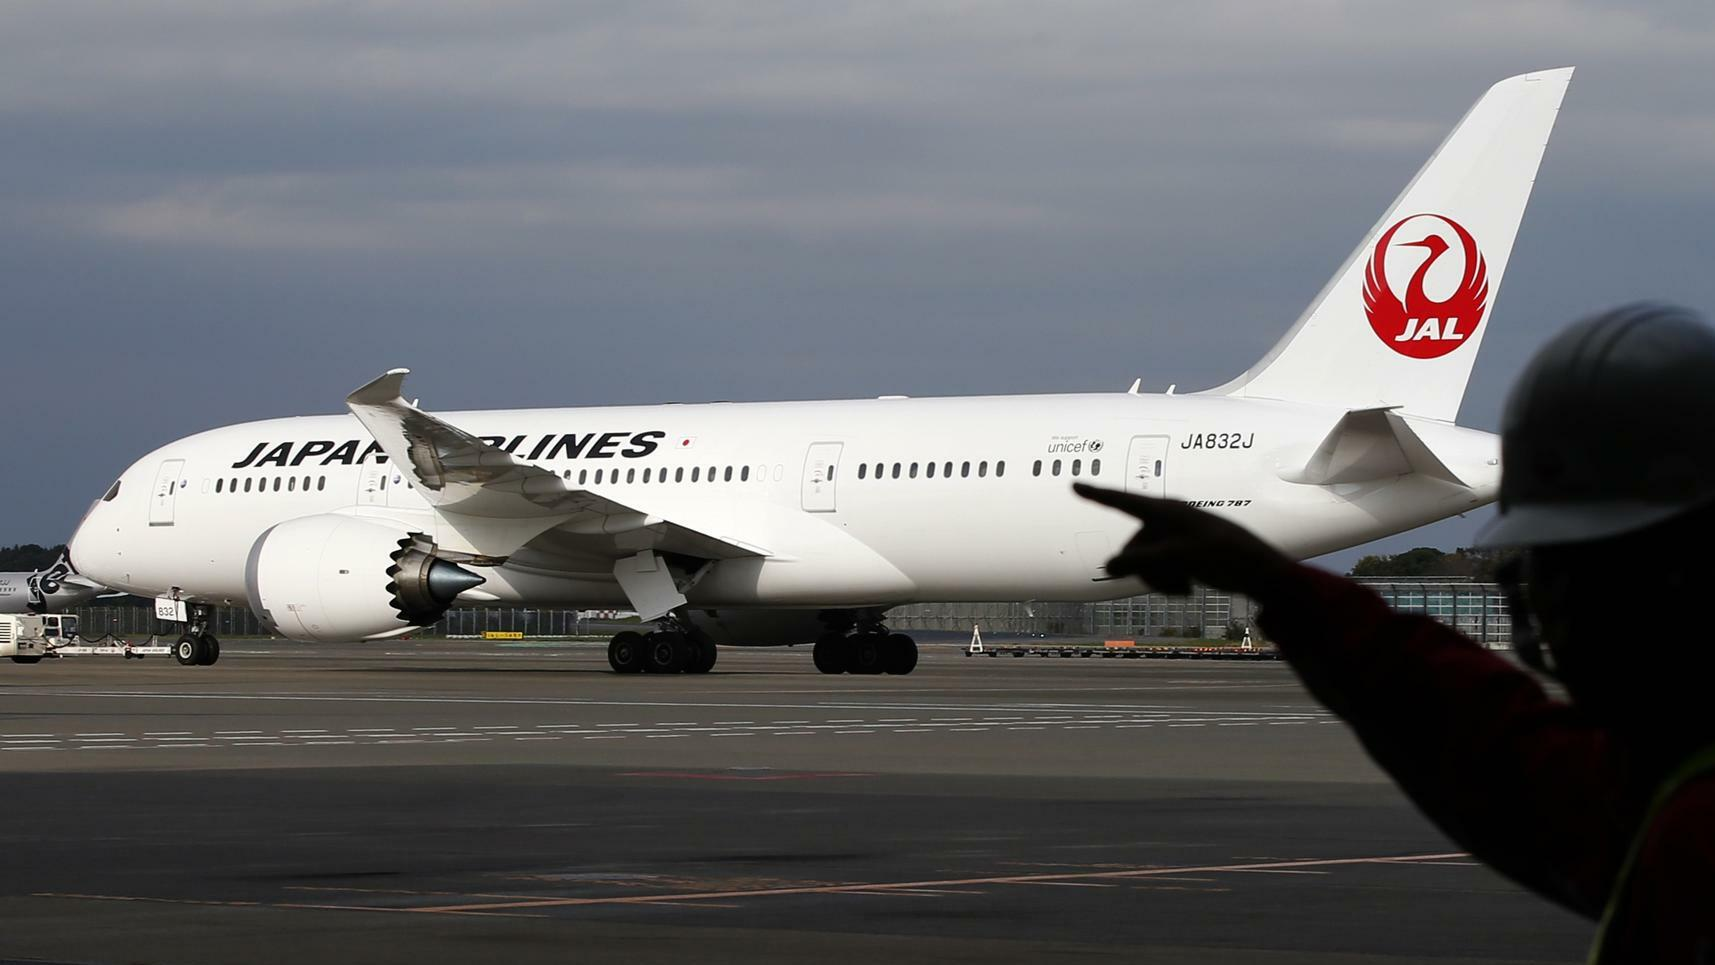 Japan Airlines Quelle: REUTERS